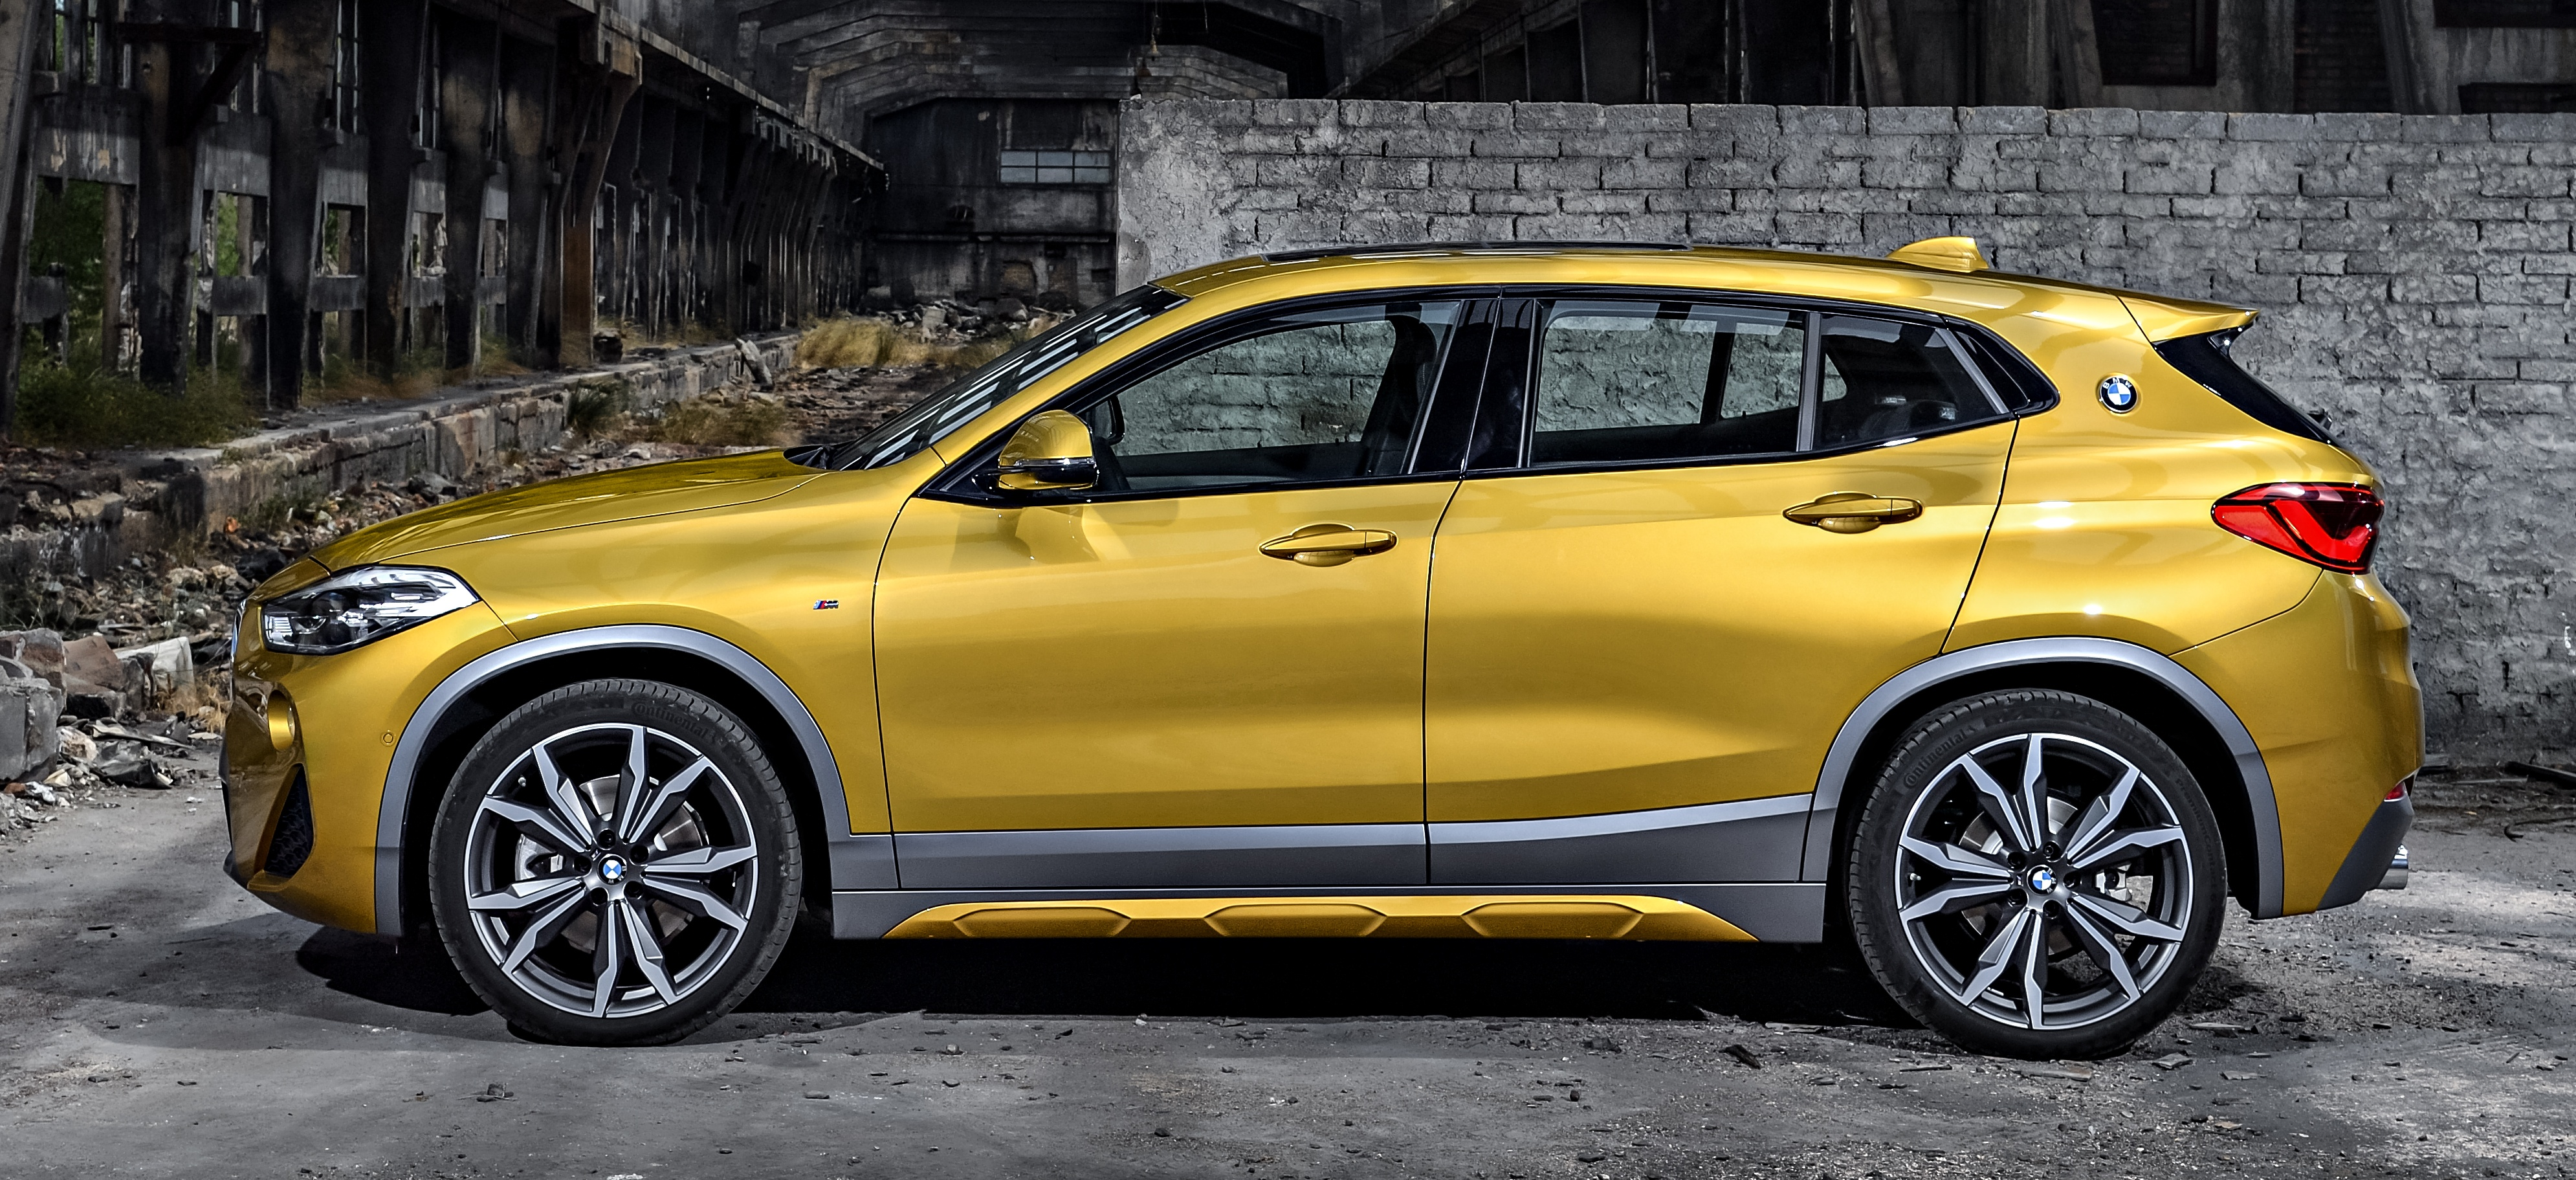 F39 Bmw X2 Unveiled With New M Sport X Package Paul Tan